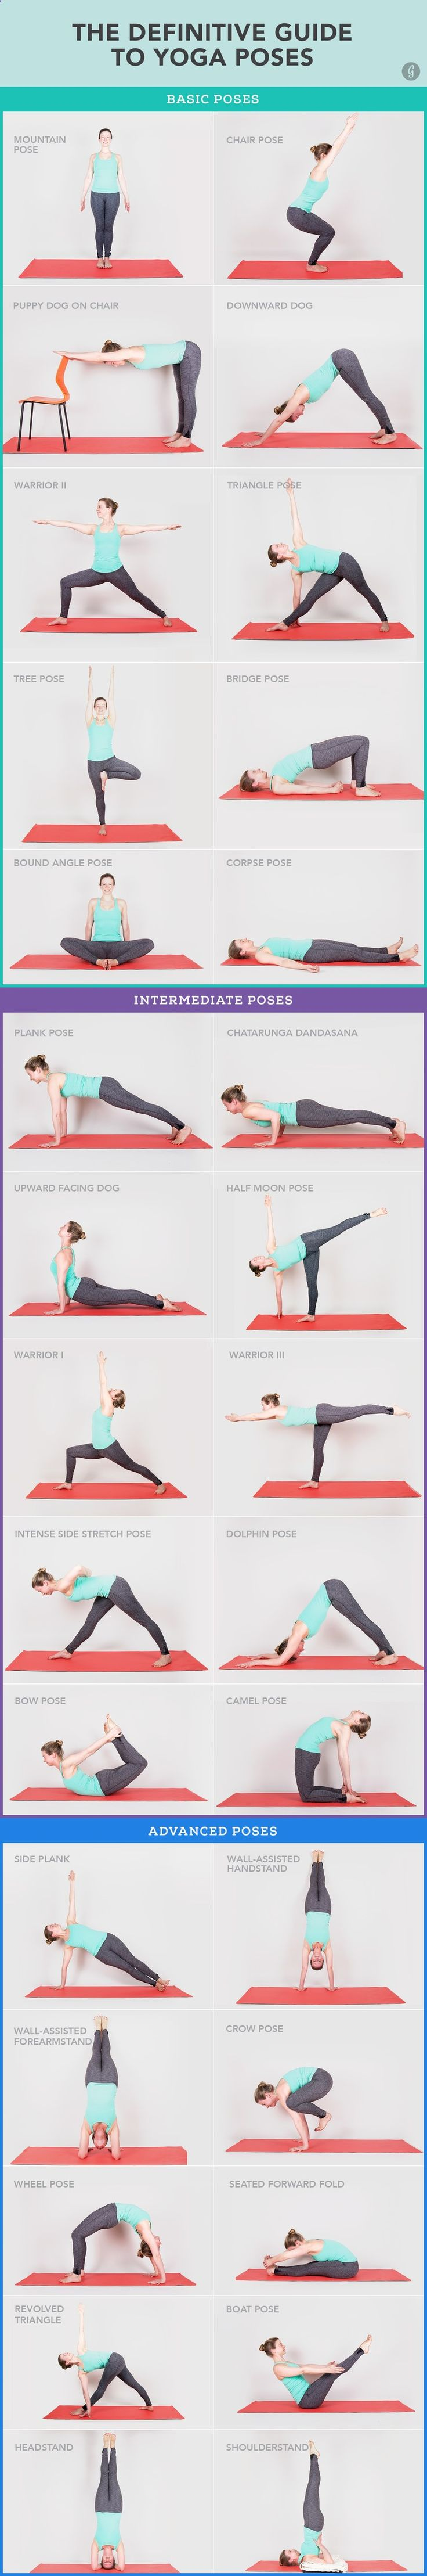 293 best Yoga Fitness Flat Belly images on Pinterest